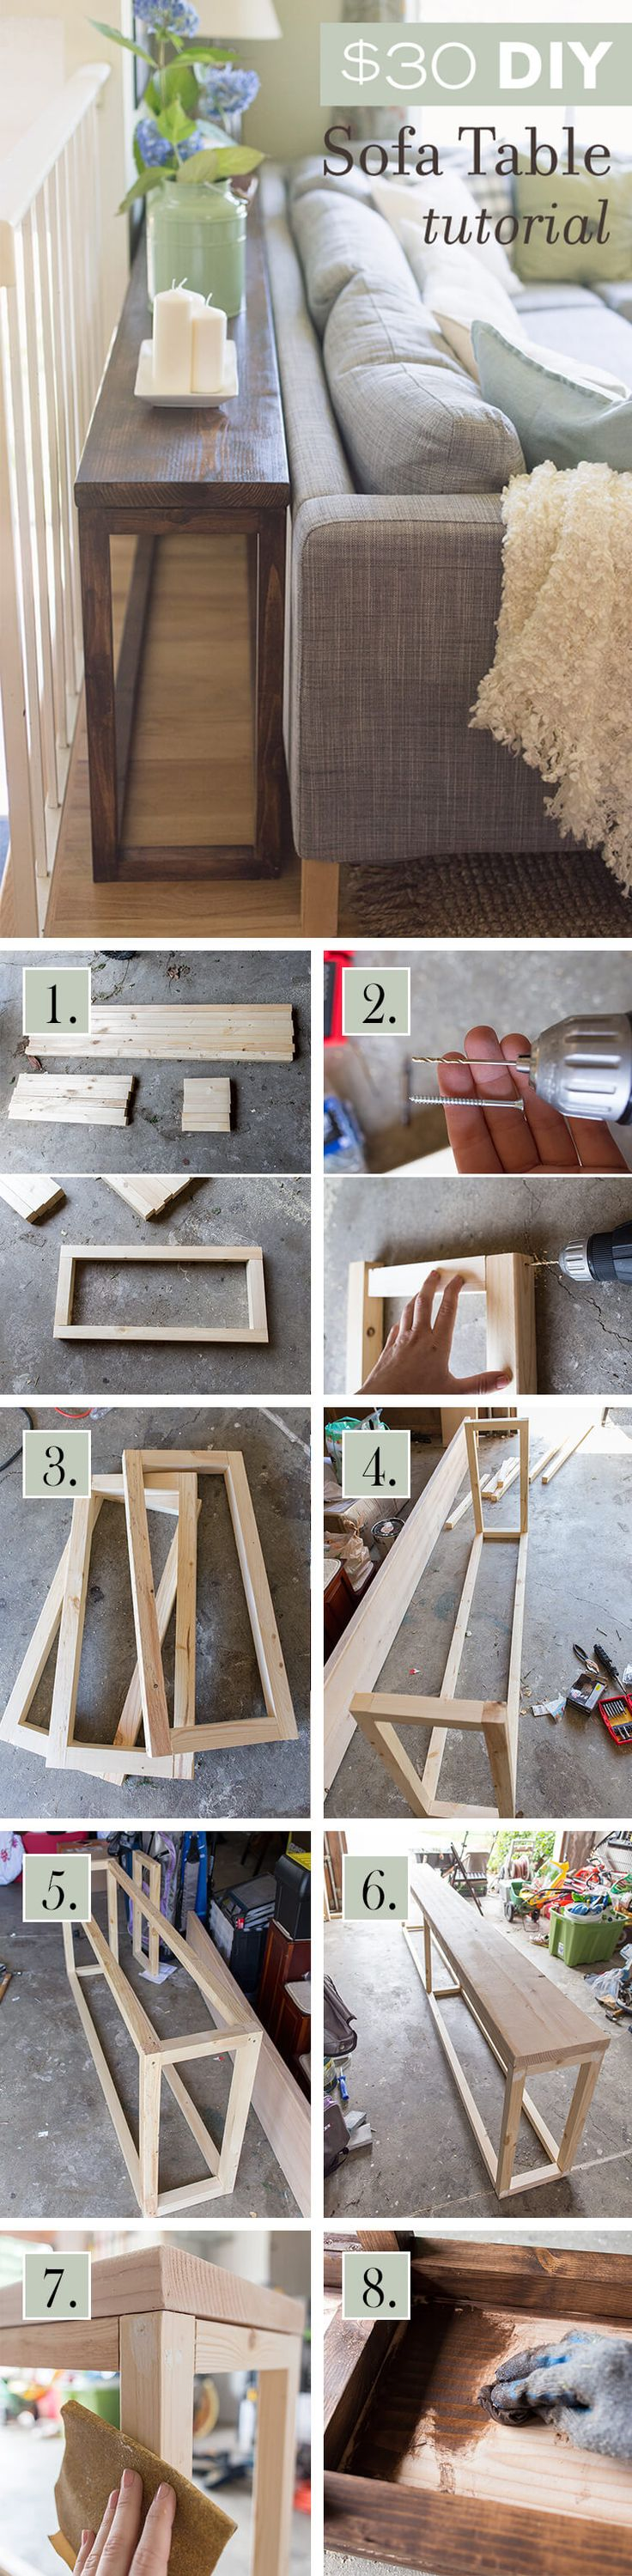 DIY Wall to Wall Sofa Table